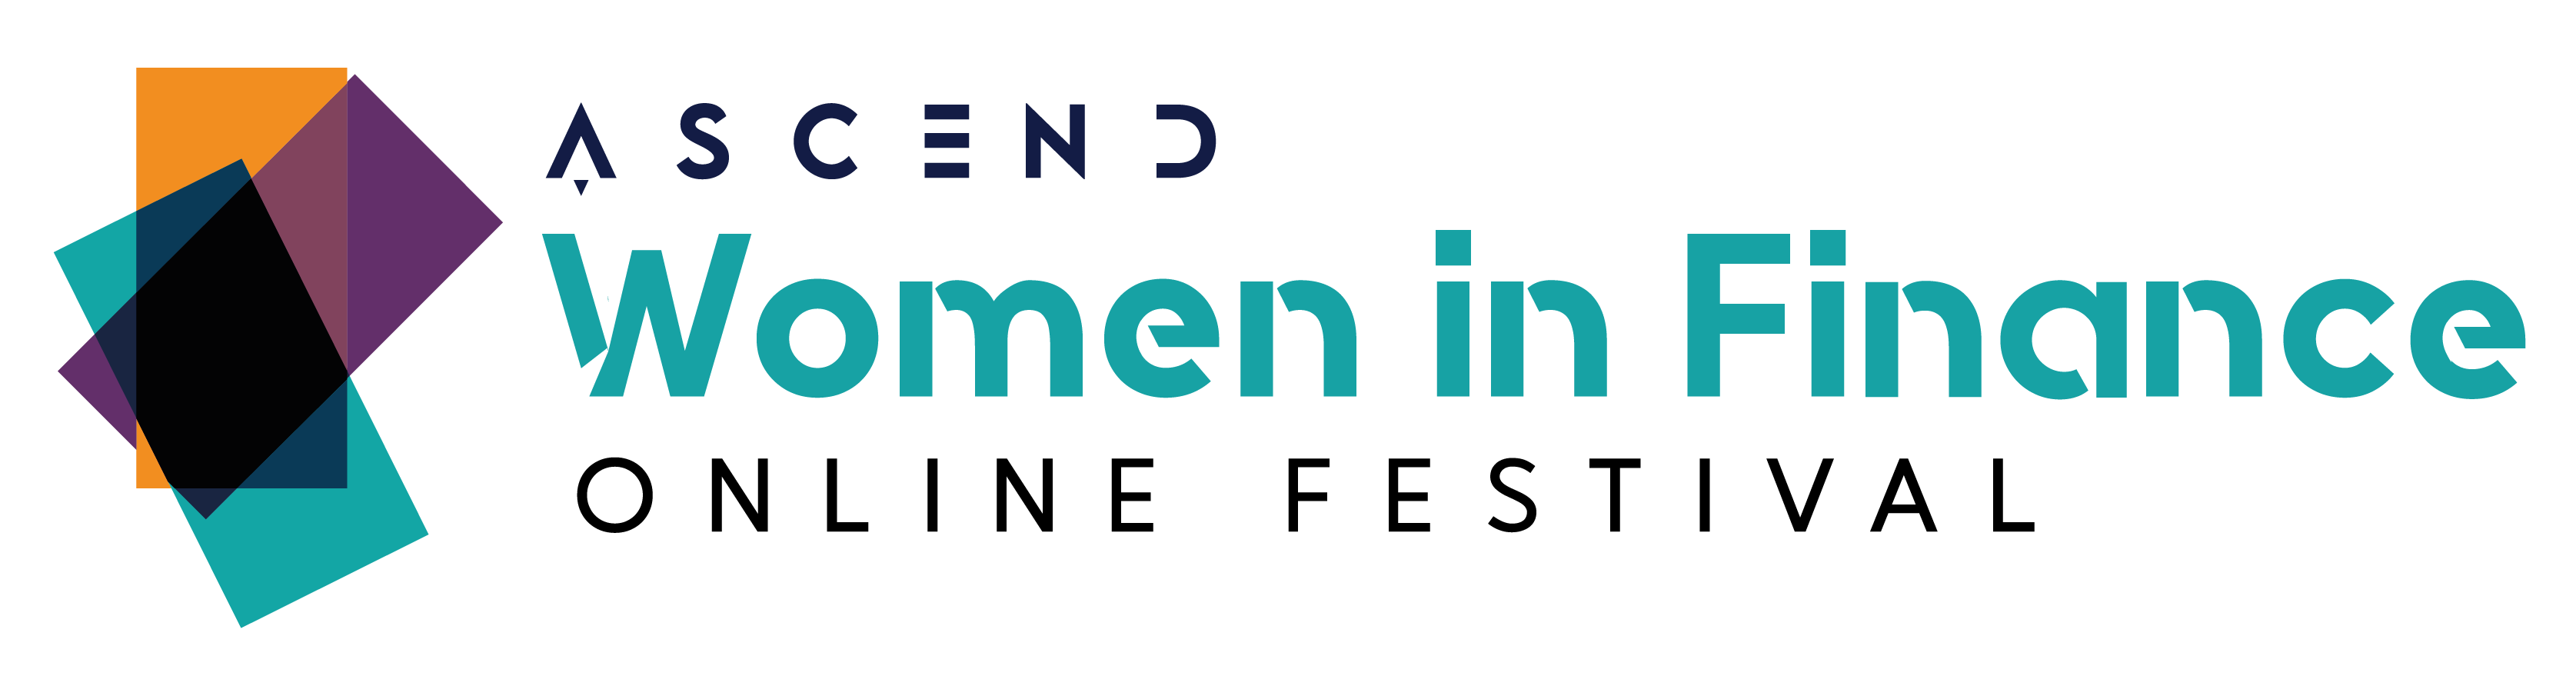 Women In Finance Online Festival